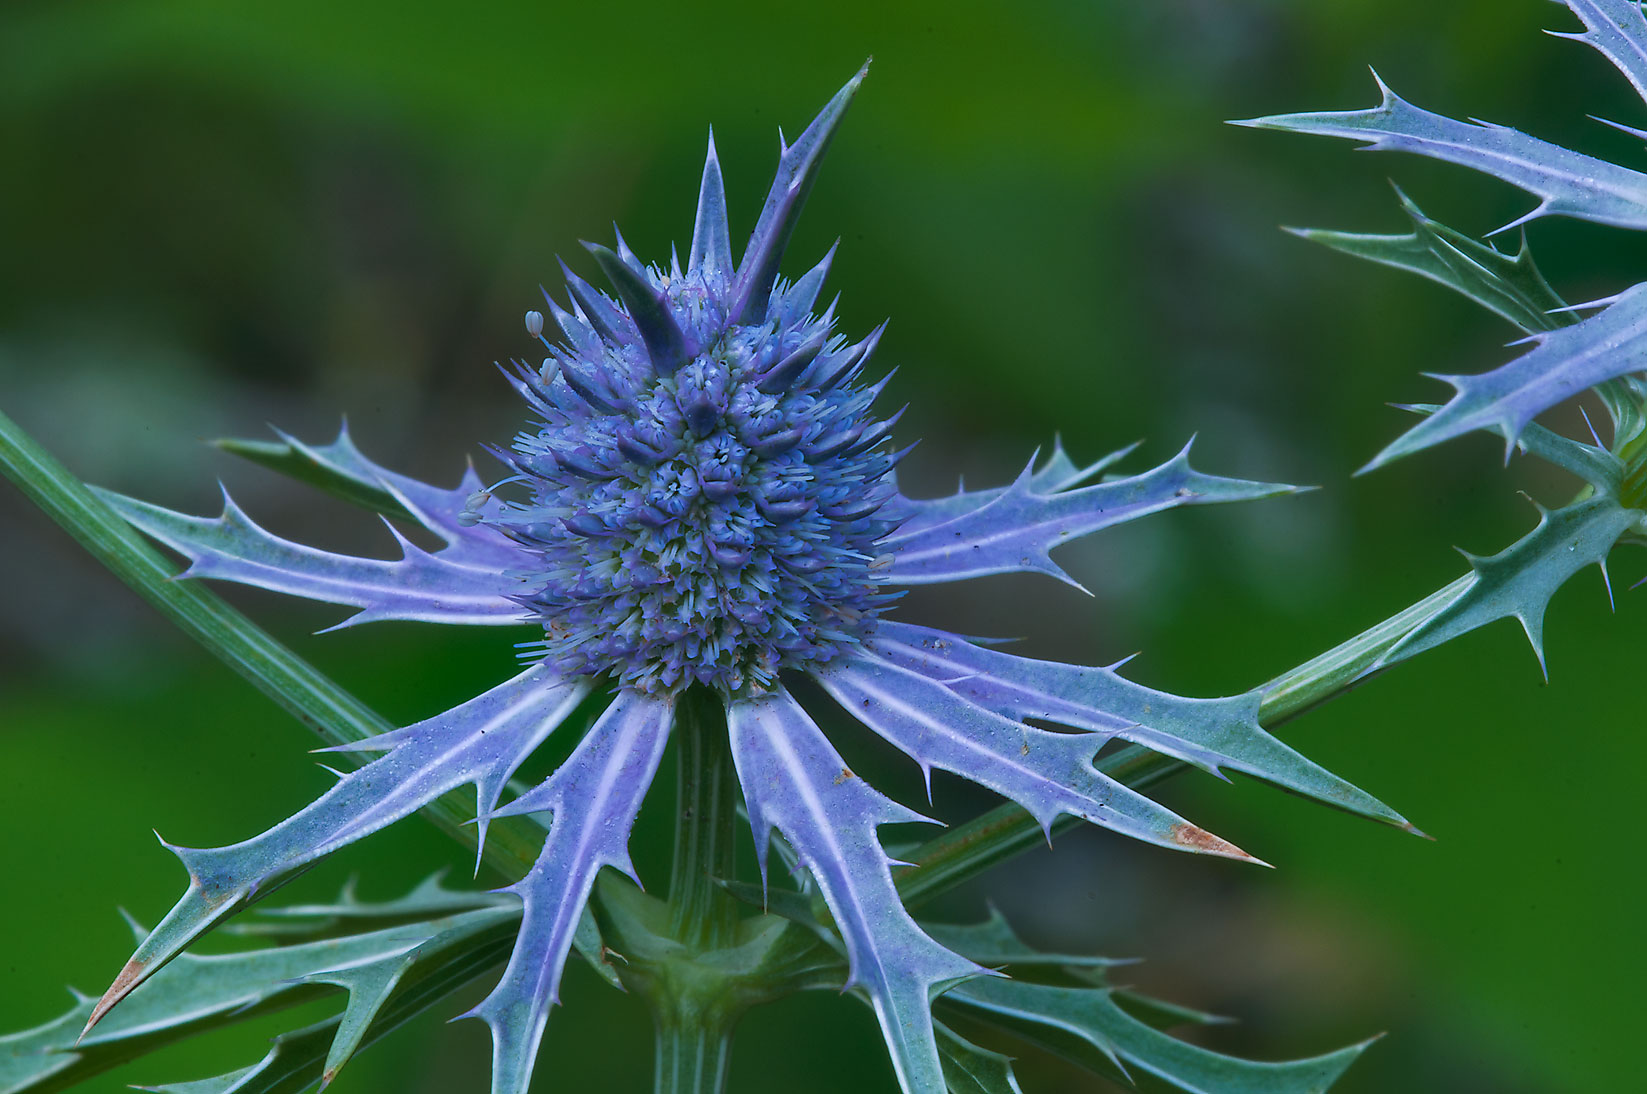 Hooker's eryngo (Eryngium hookeri) in Lick Creek Park. College Station, Texas